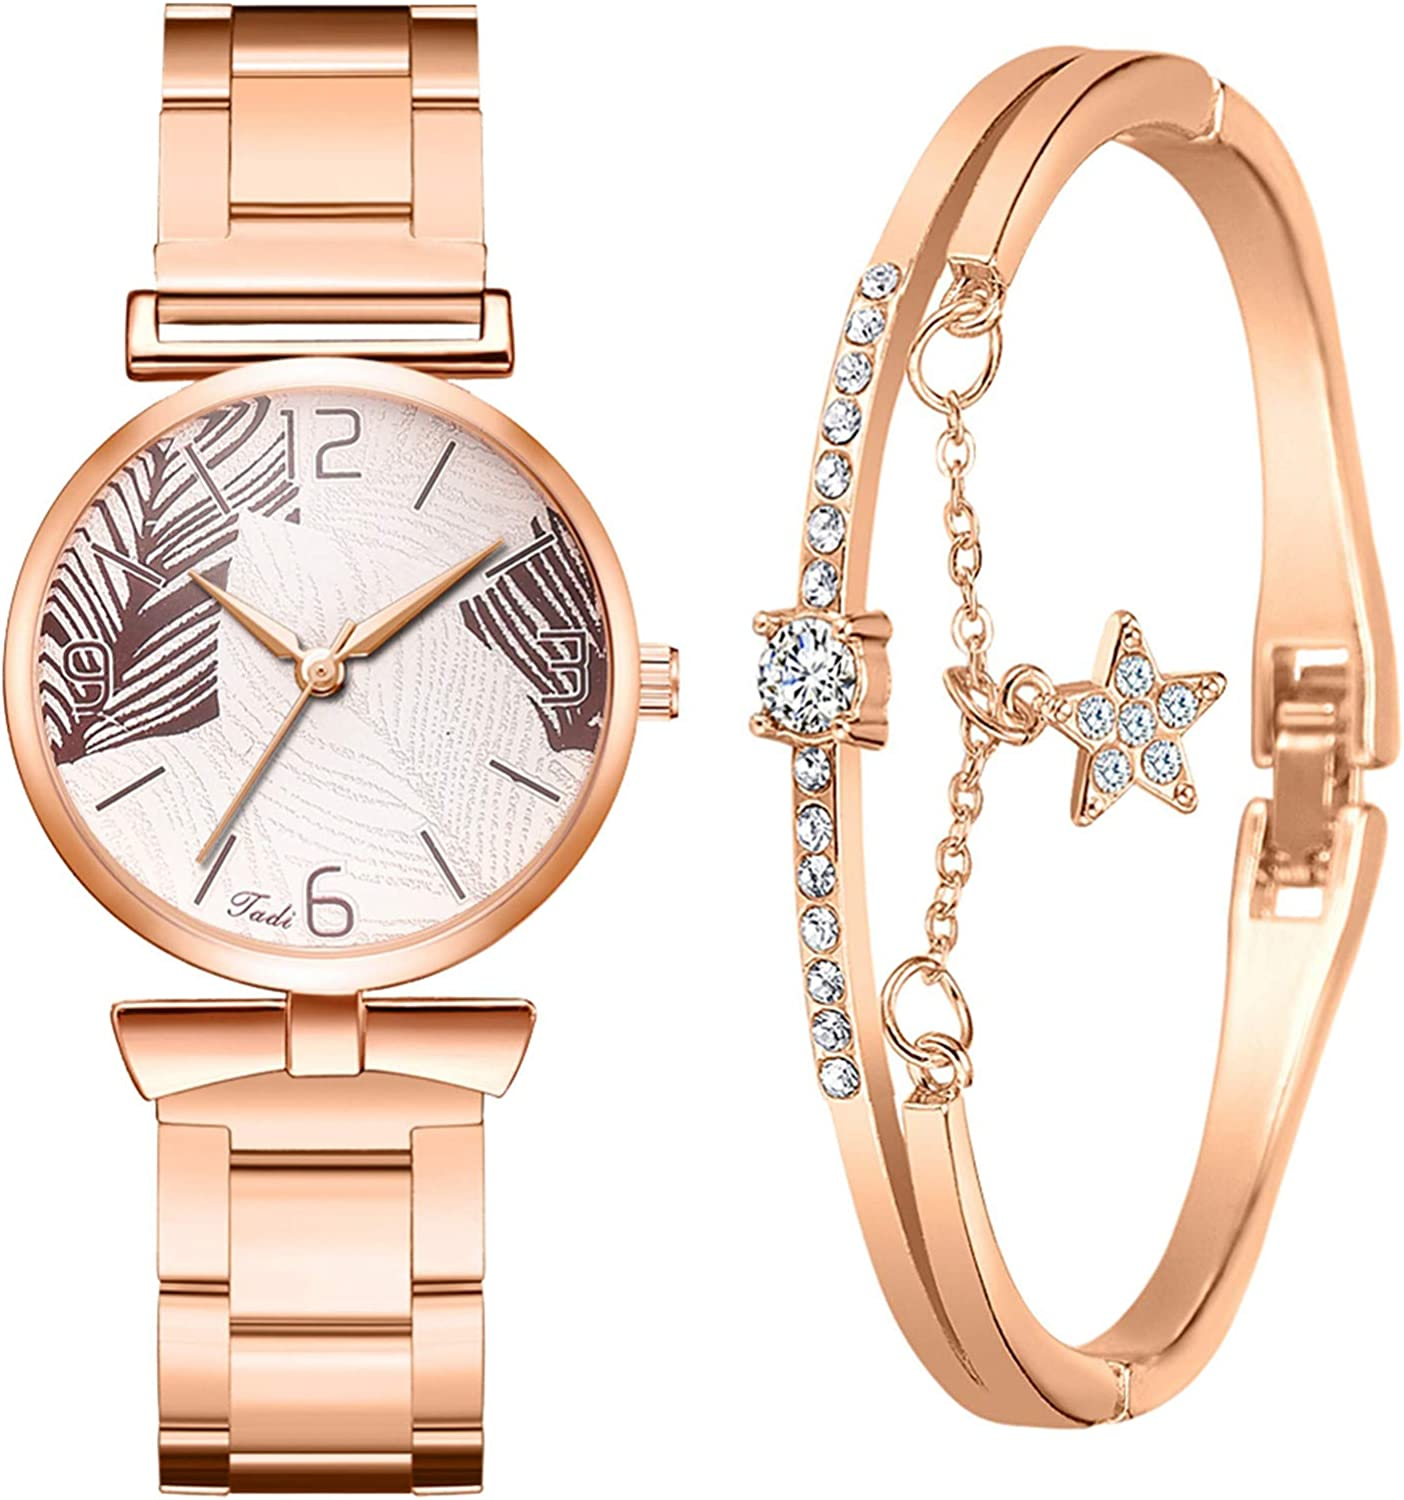 MINGE 2PC Valentine Albuquerque Mall Gift Women Bracelet Necklace Ele and 55% OFF Watches